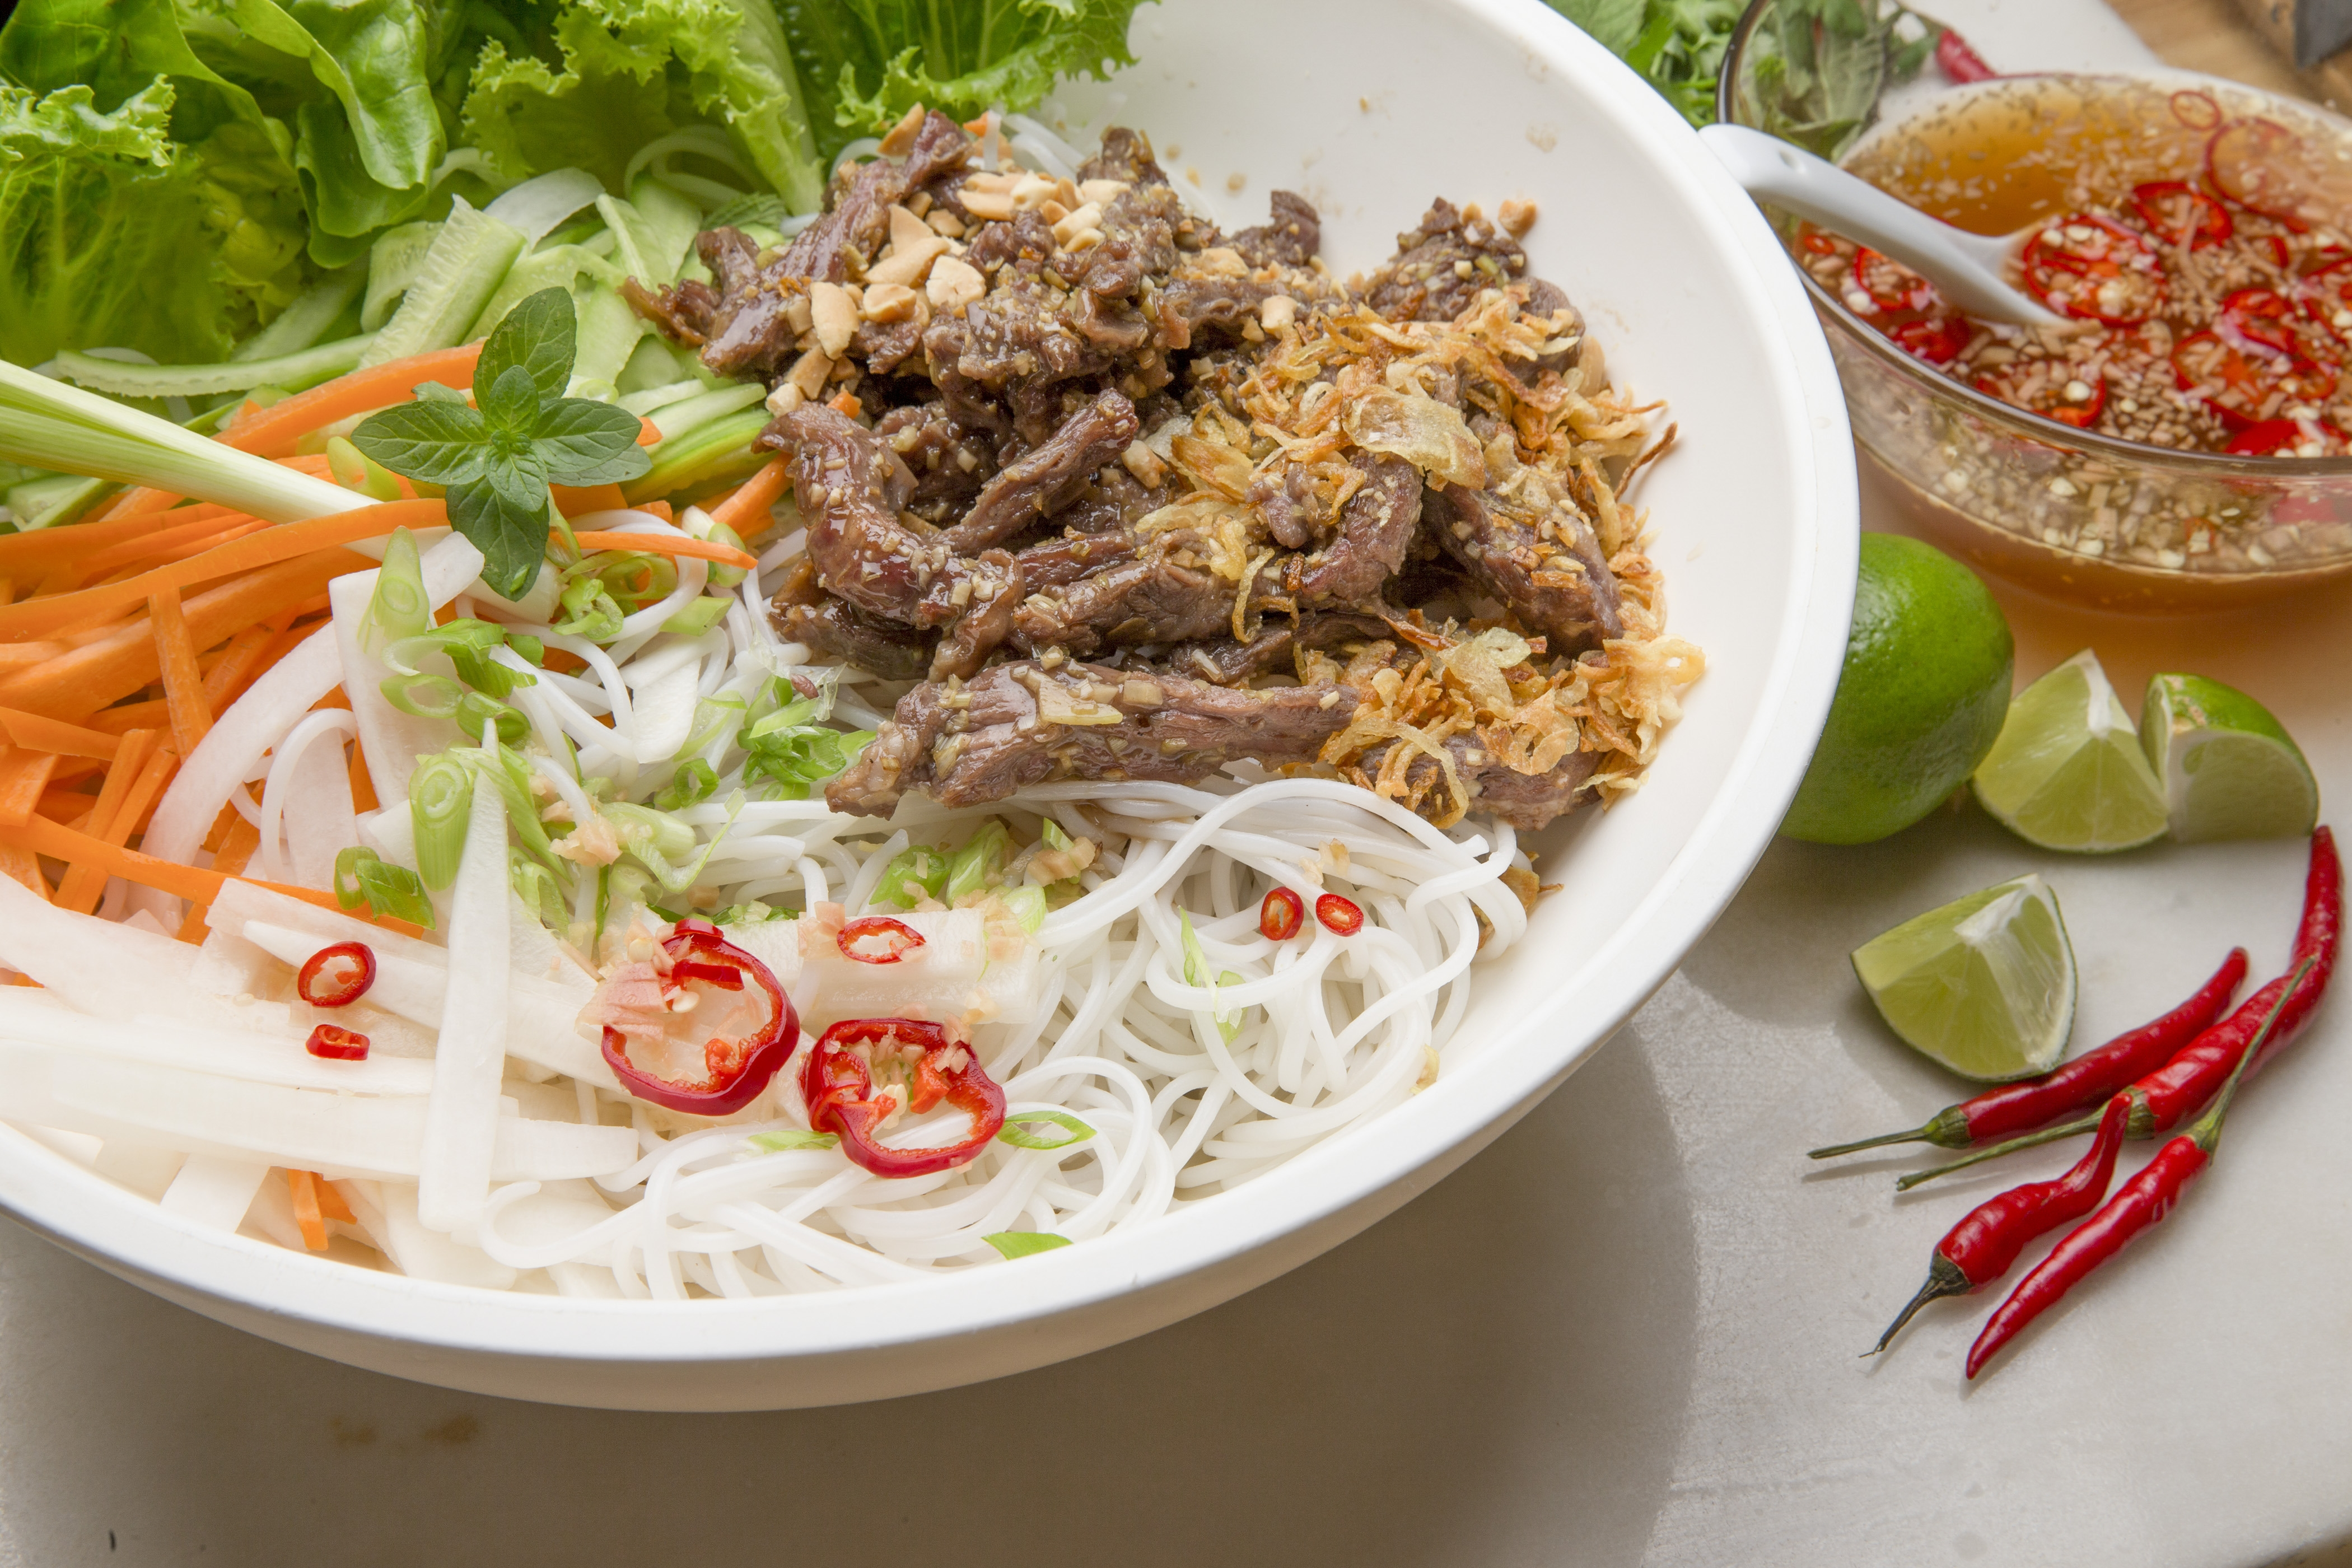 A bowl of bun bo xao, a warm is a made-to-order Vietnamese noodle salad made with beef, vegetables, crushed roasted peanuts and nuoc cham, a traditional fish  sauce.